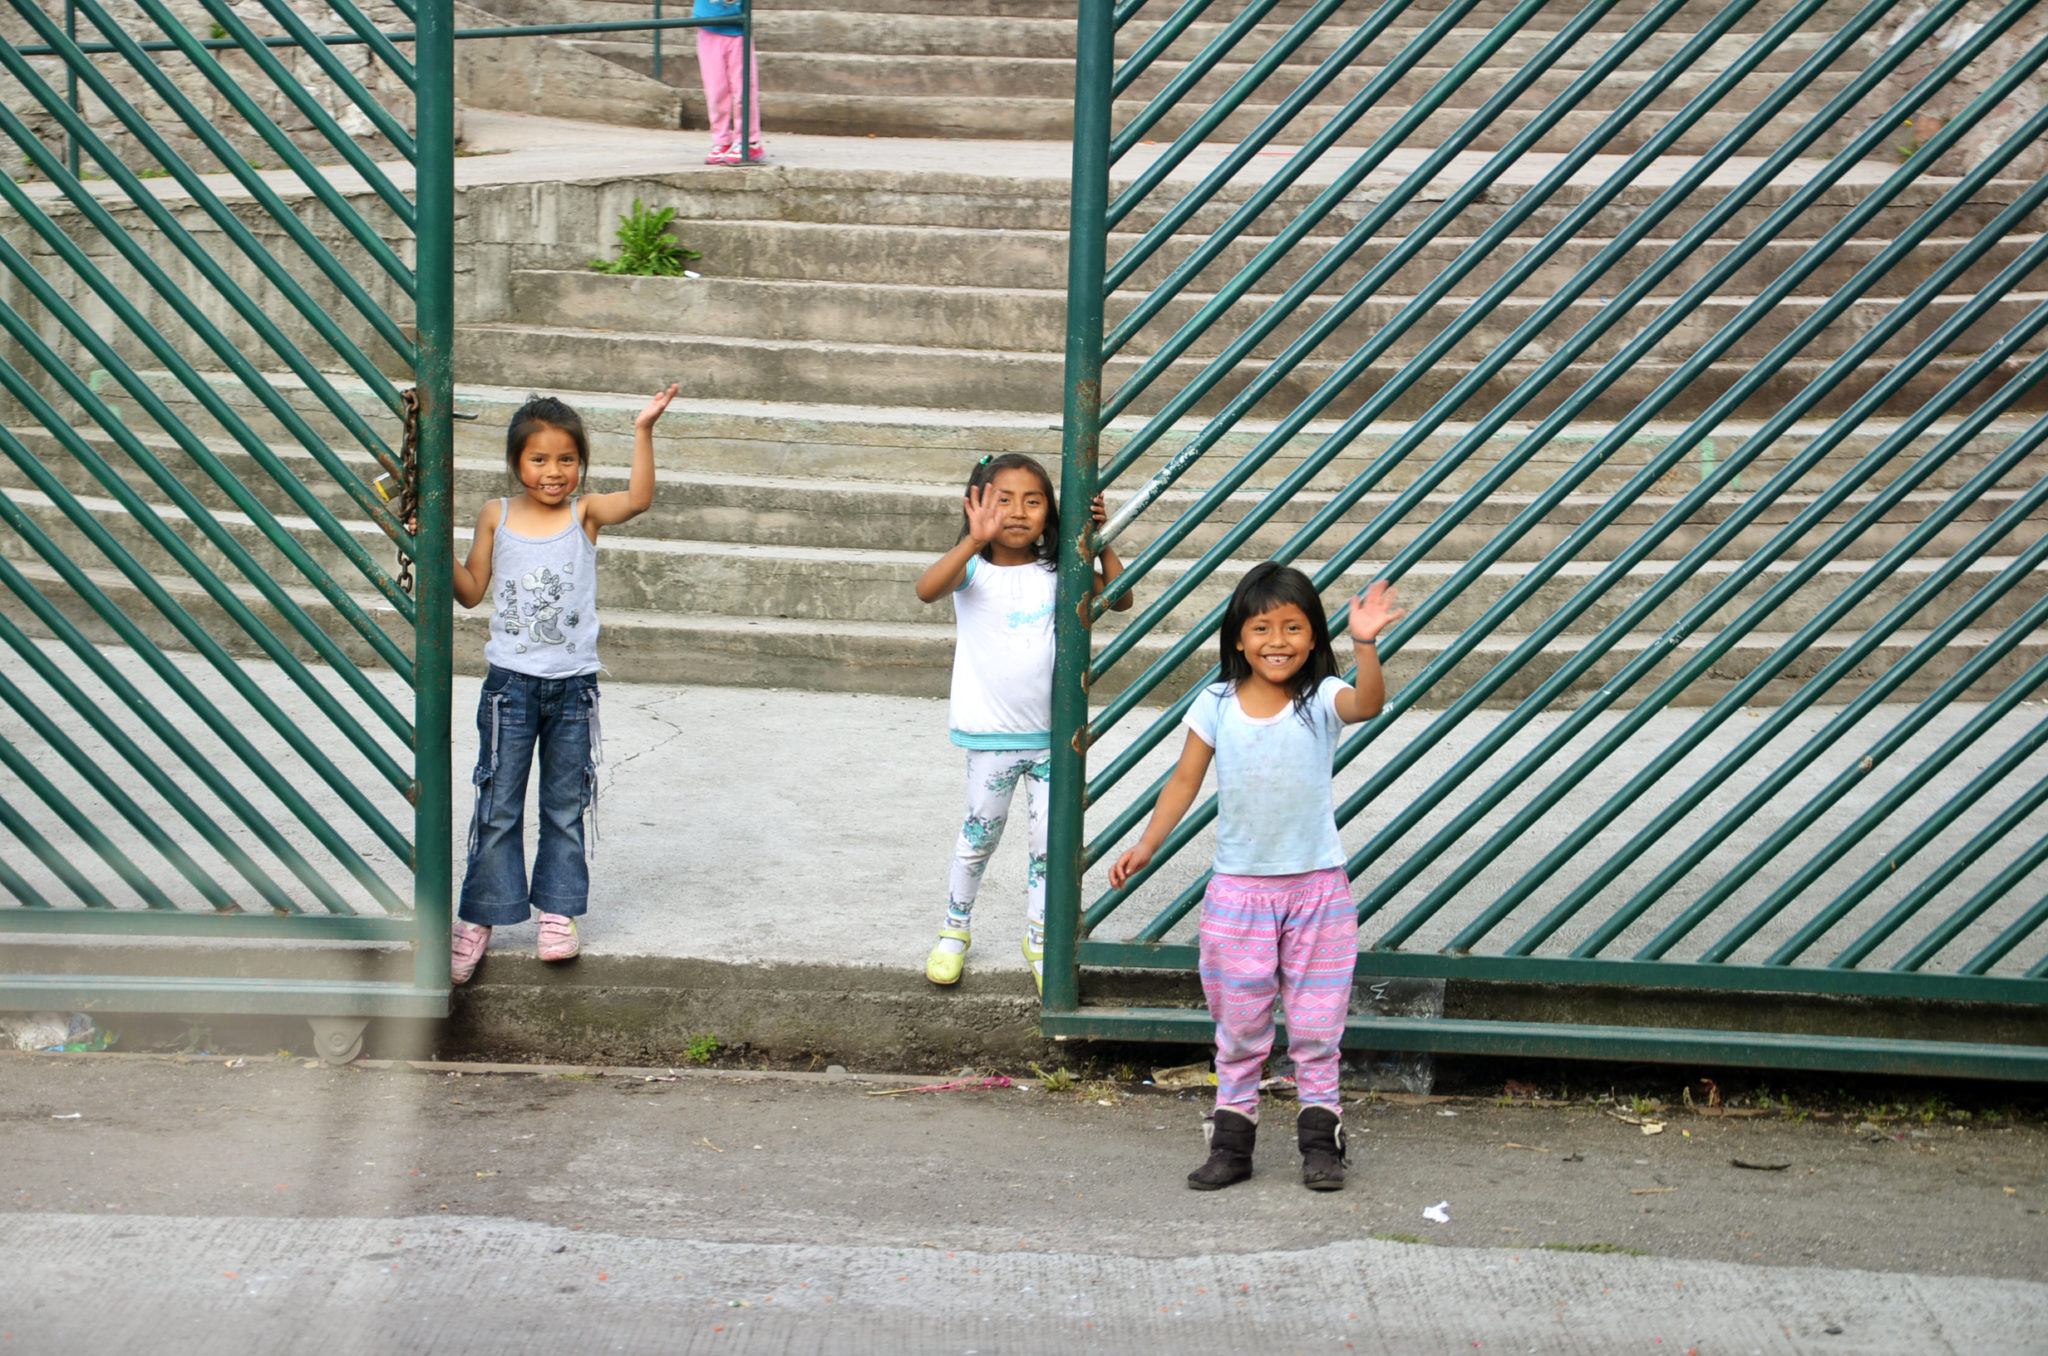 Things-to-see-in-Ecuador-kids